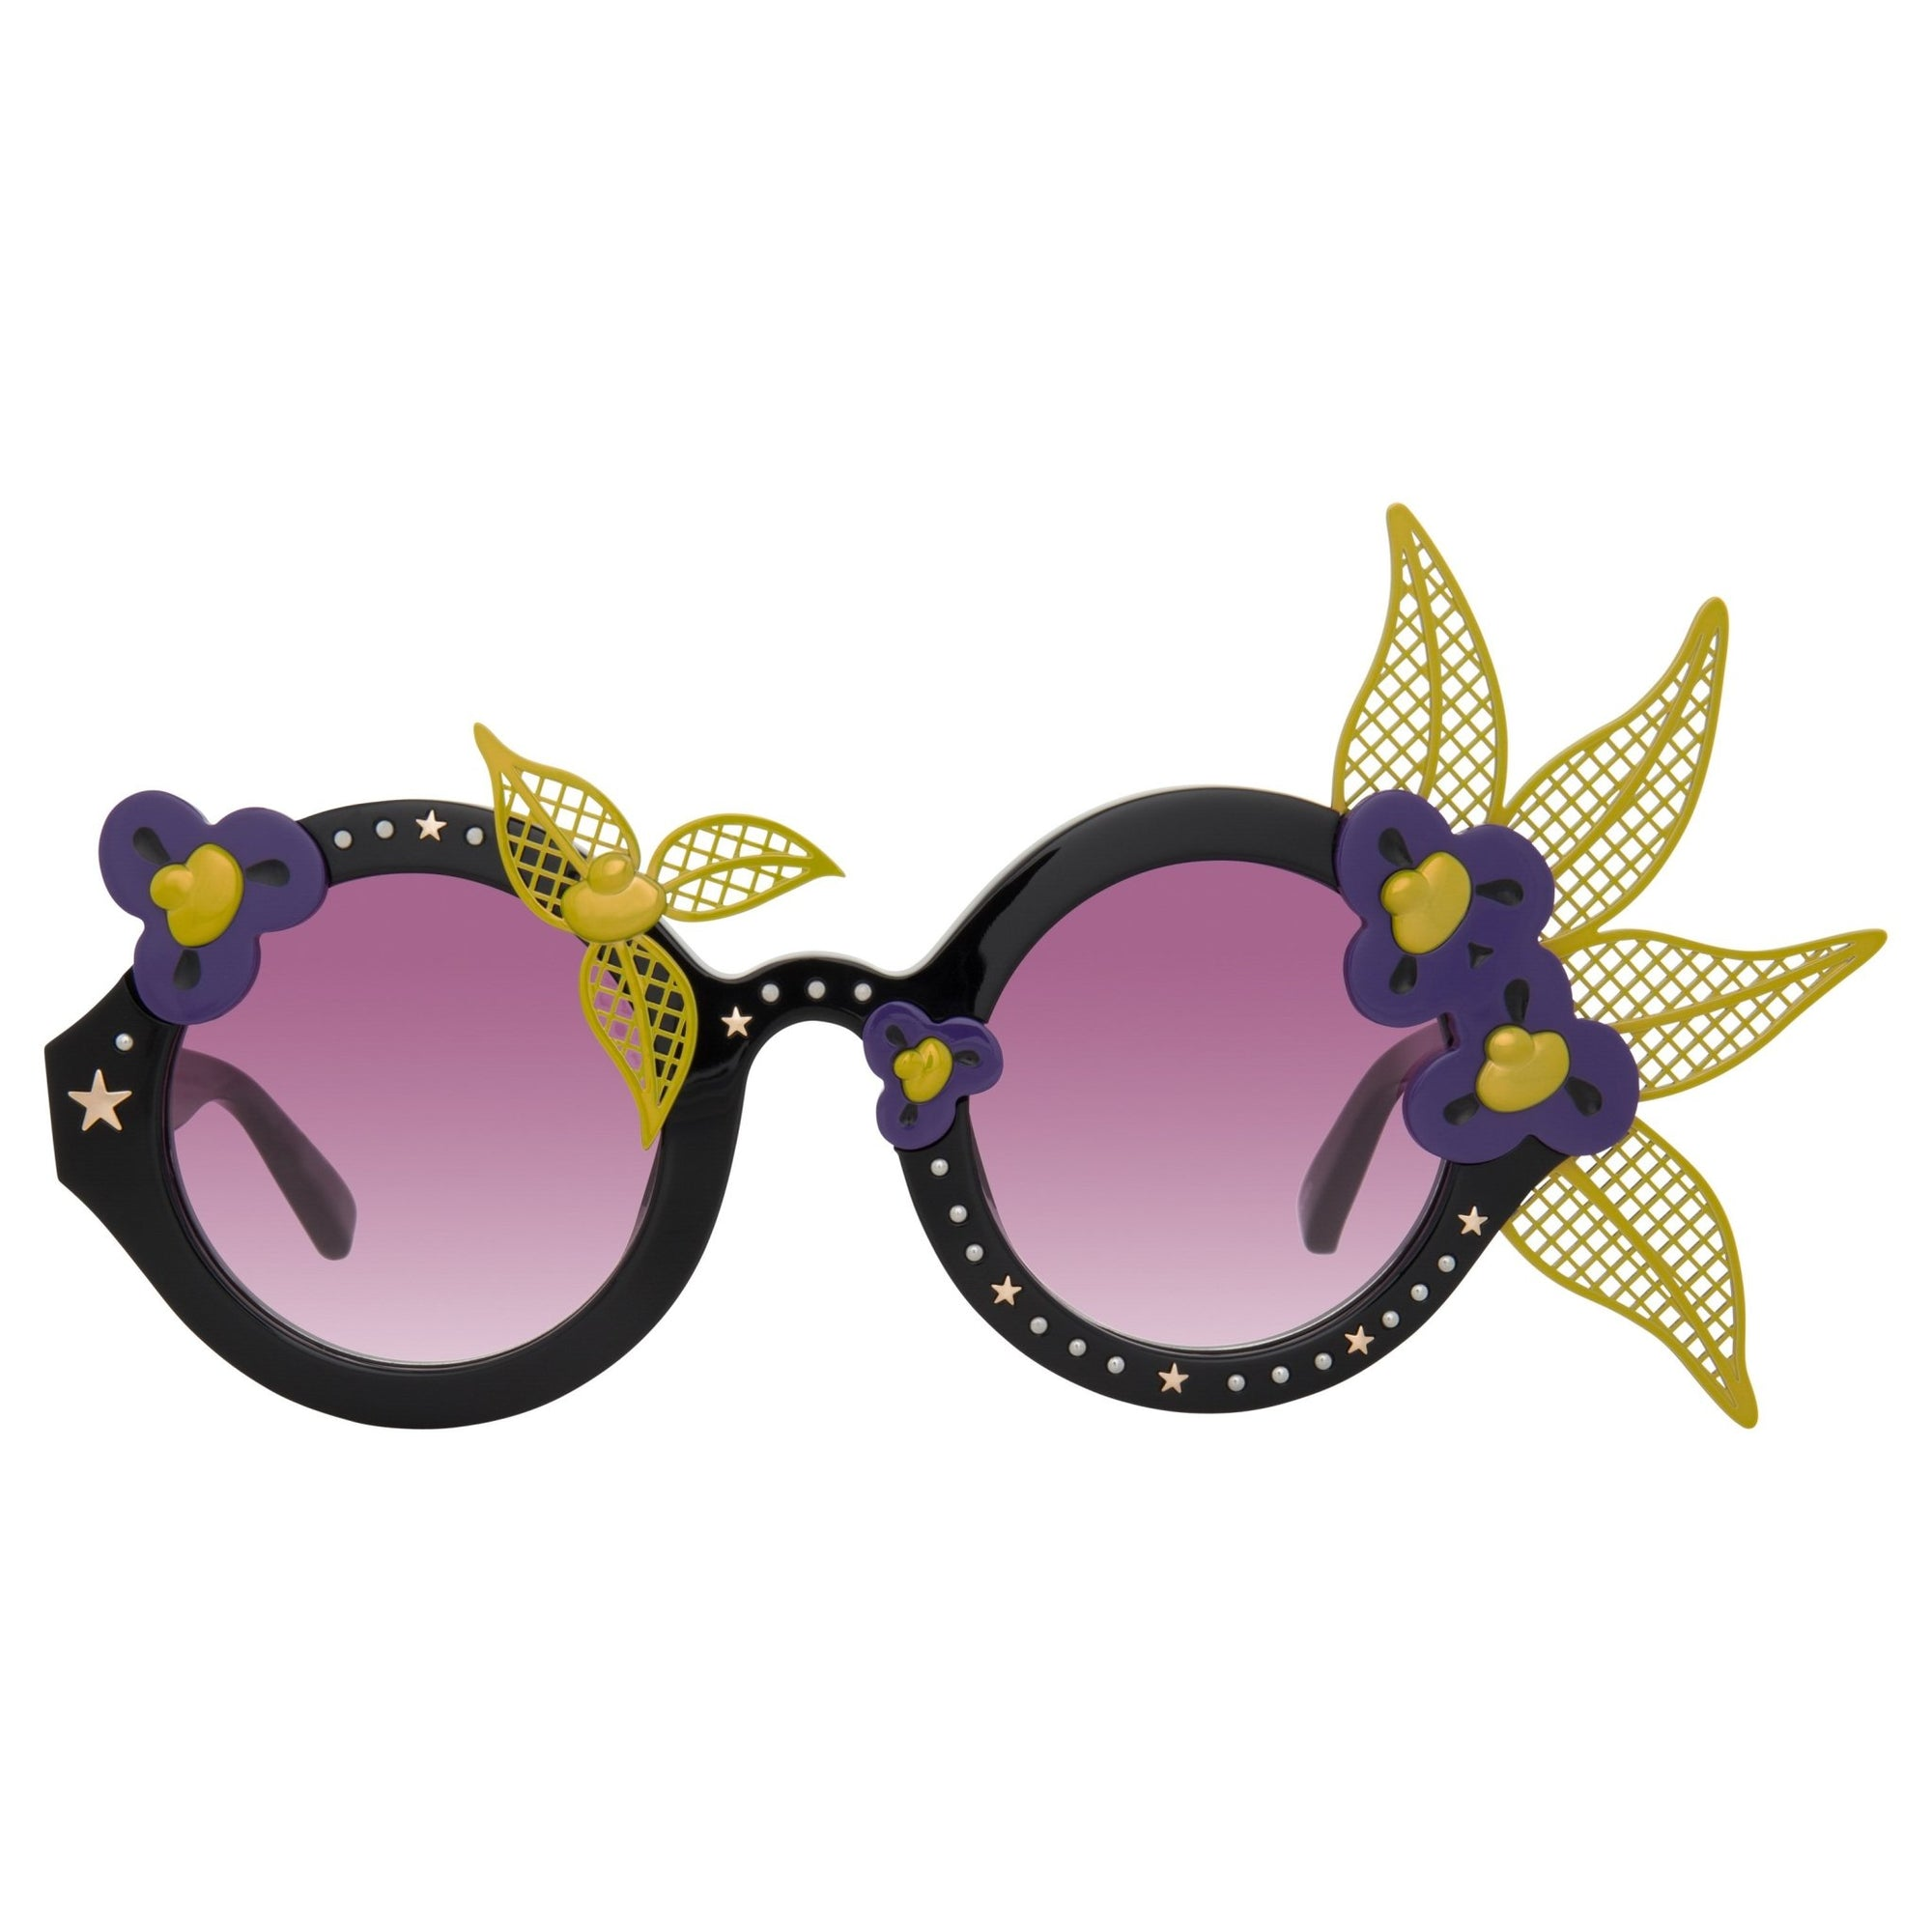 Amie Victoria Robertson Sunglasses Round Black and Purple